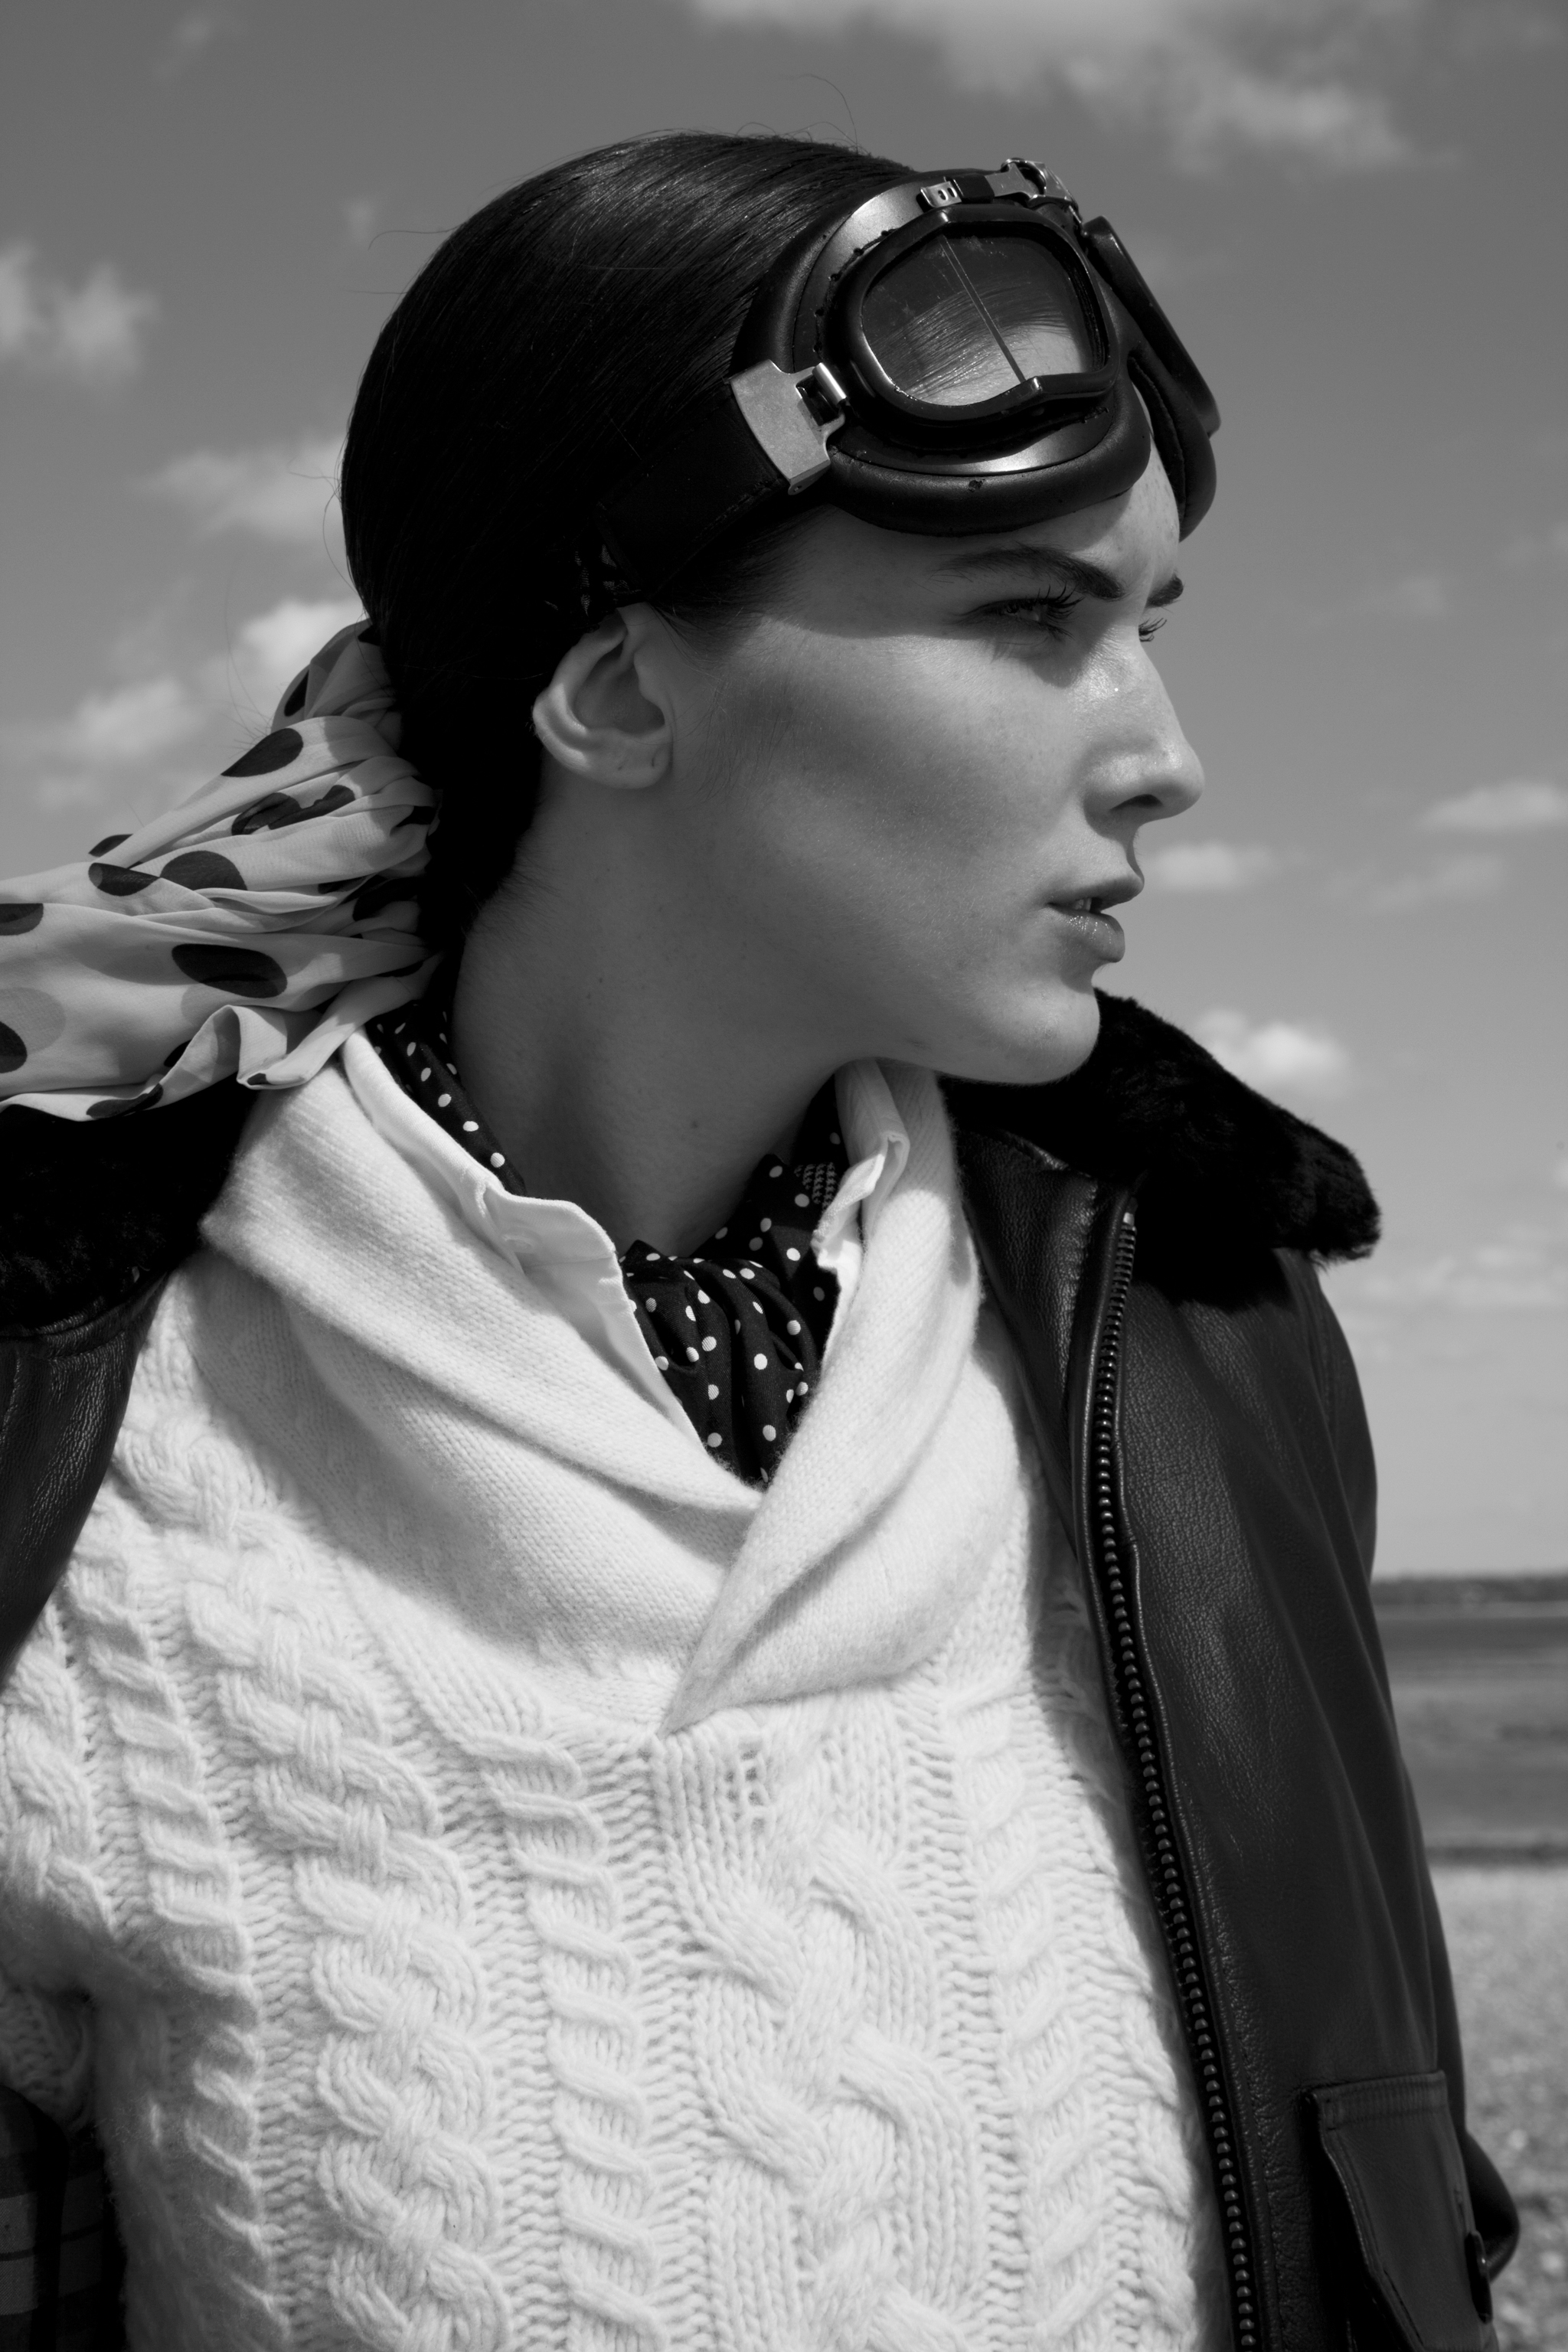 Hamptons beach vintage fashion black and white photography editorial